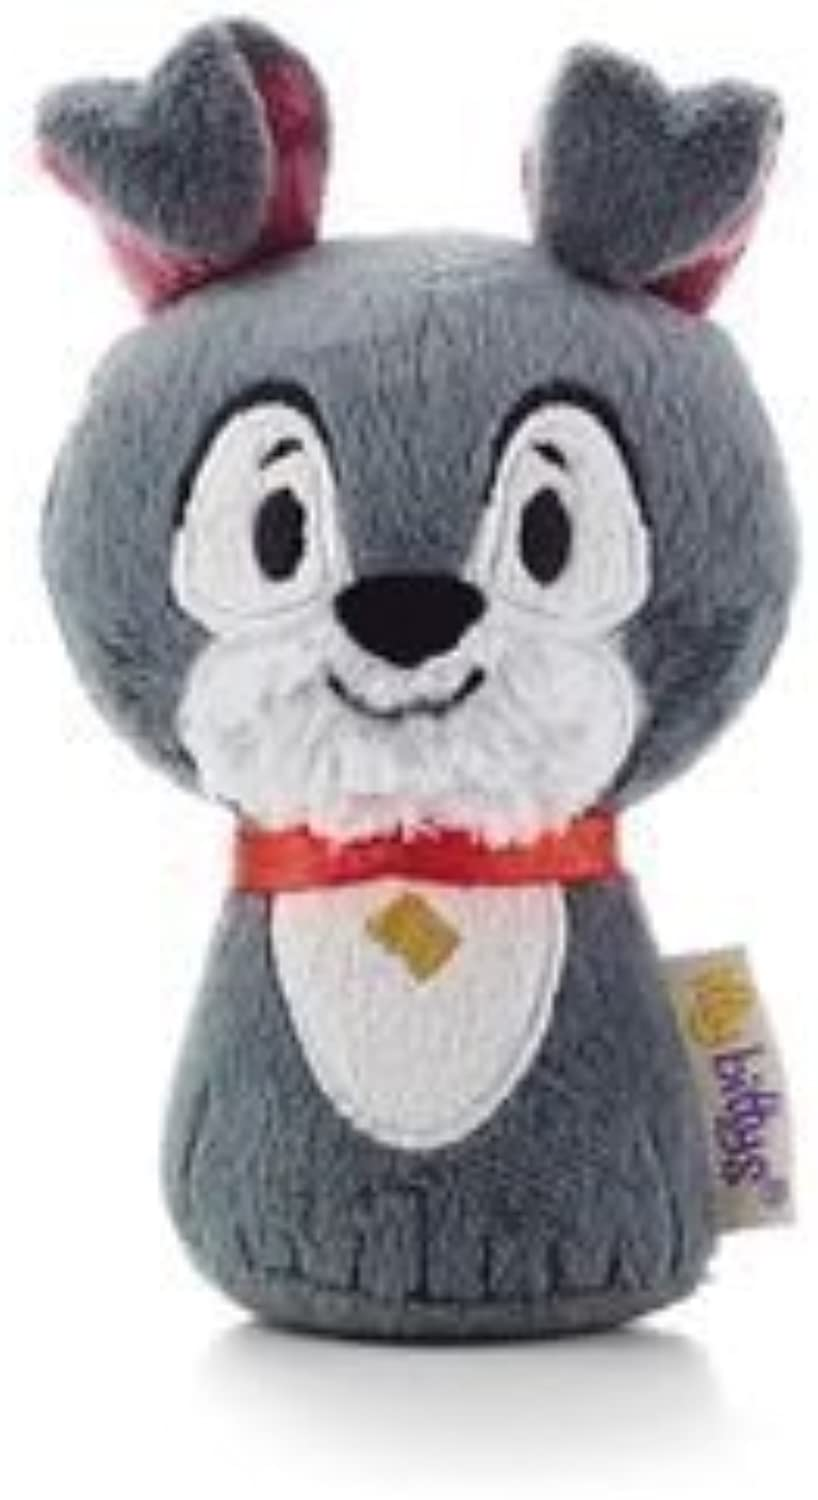 Hallmark Itty Bitty's Limited Edition Tramp From Disney's Lady and the Tramp by Itty Bittys